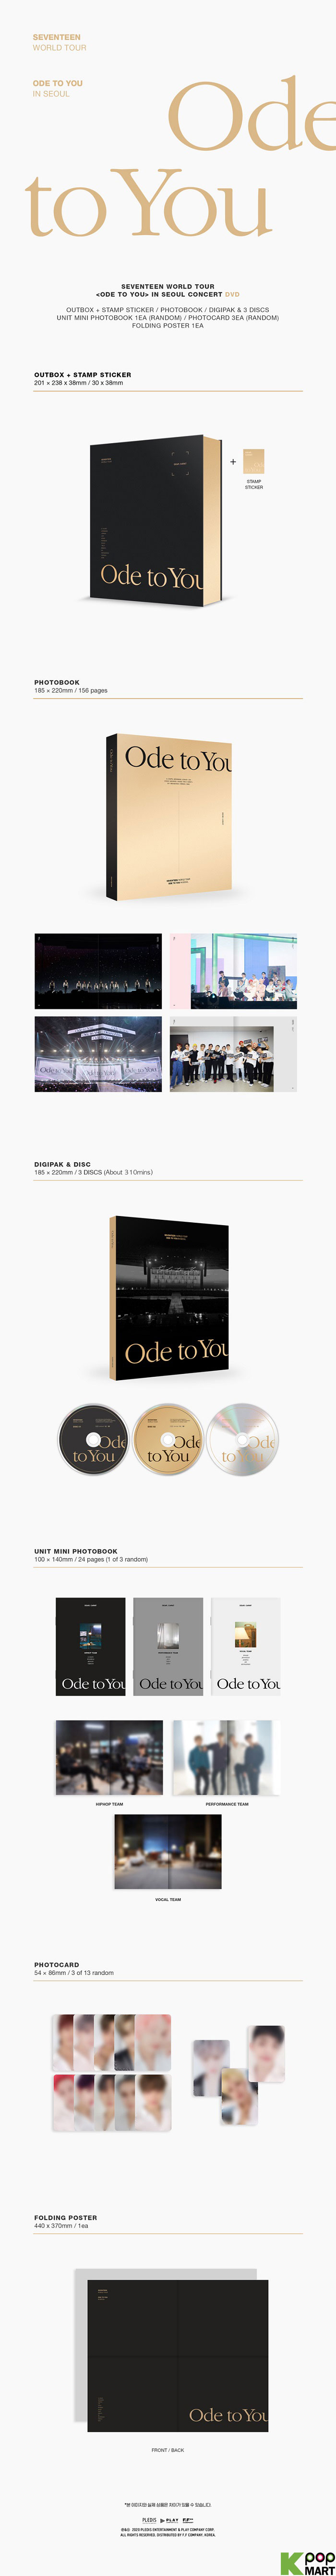 Image result for seventeen ode to you tour dvd